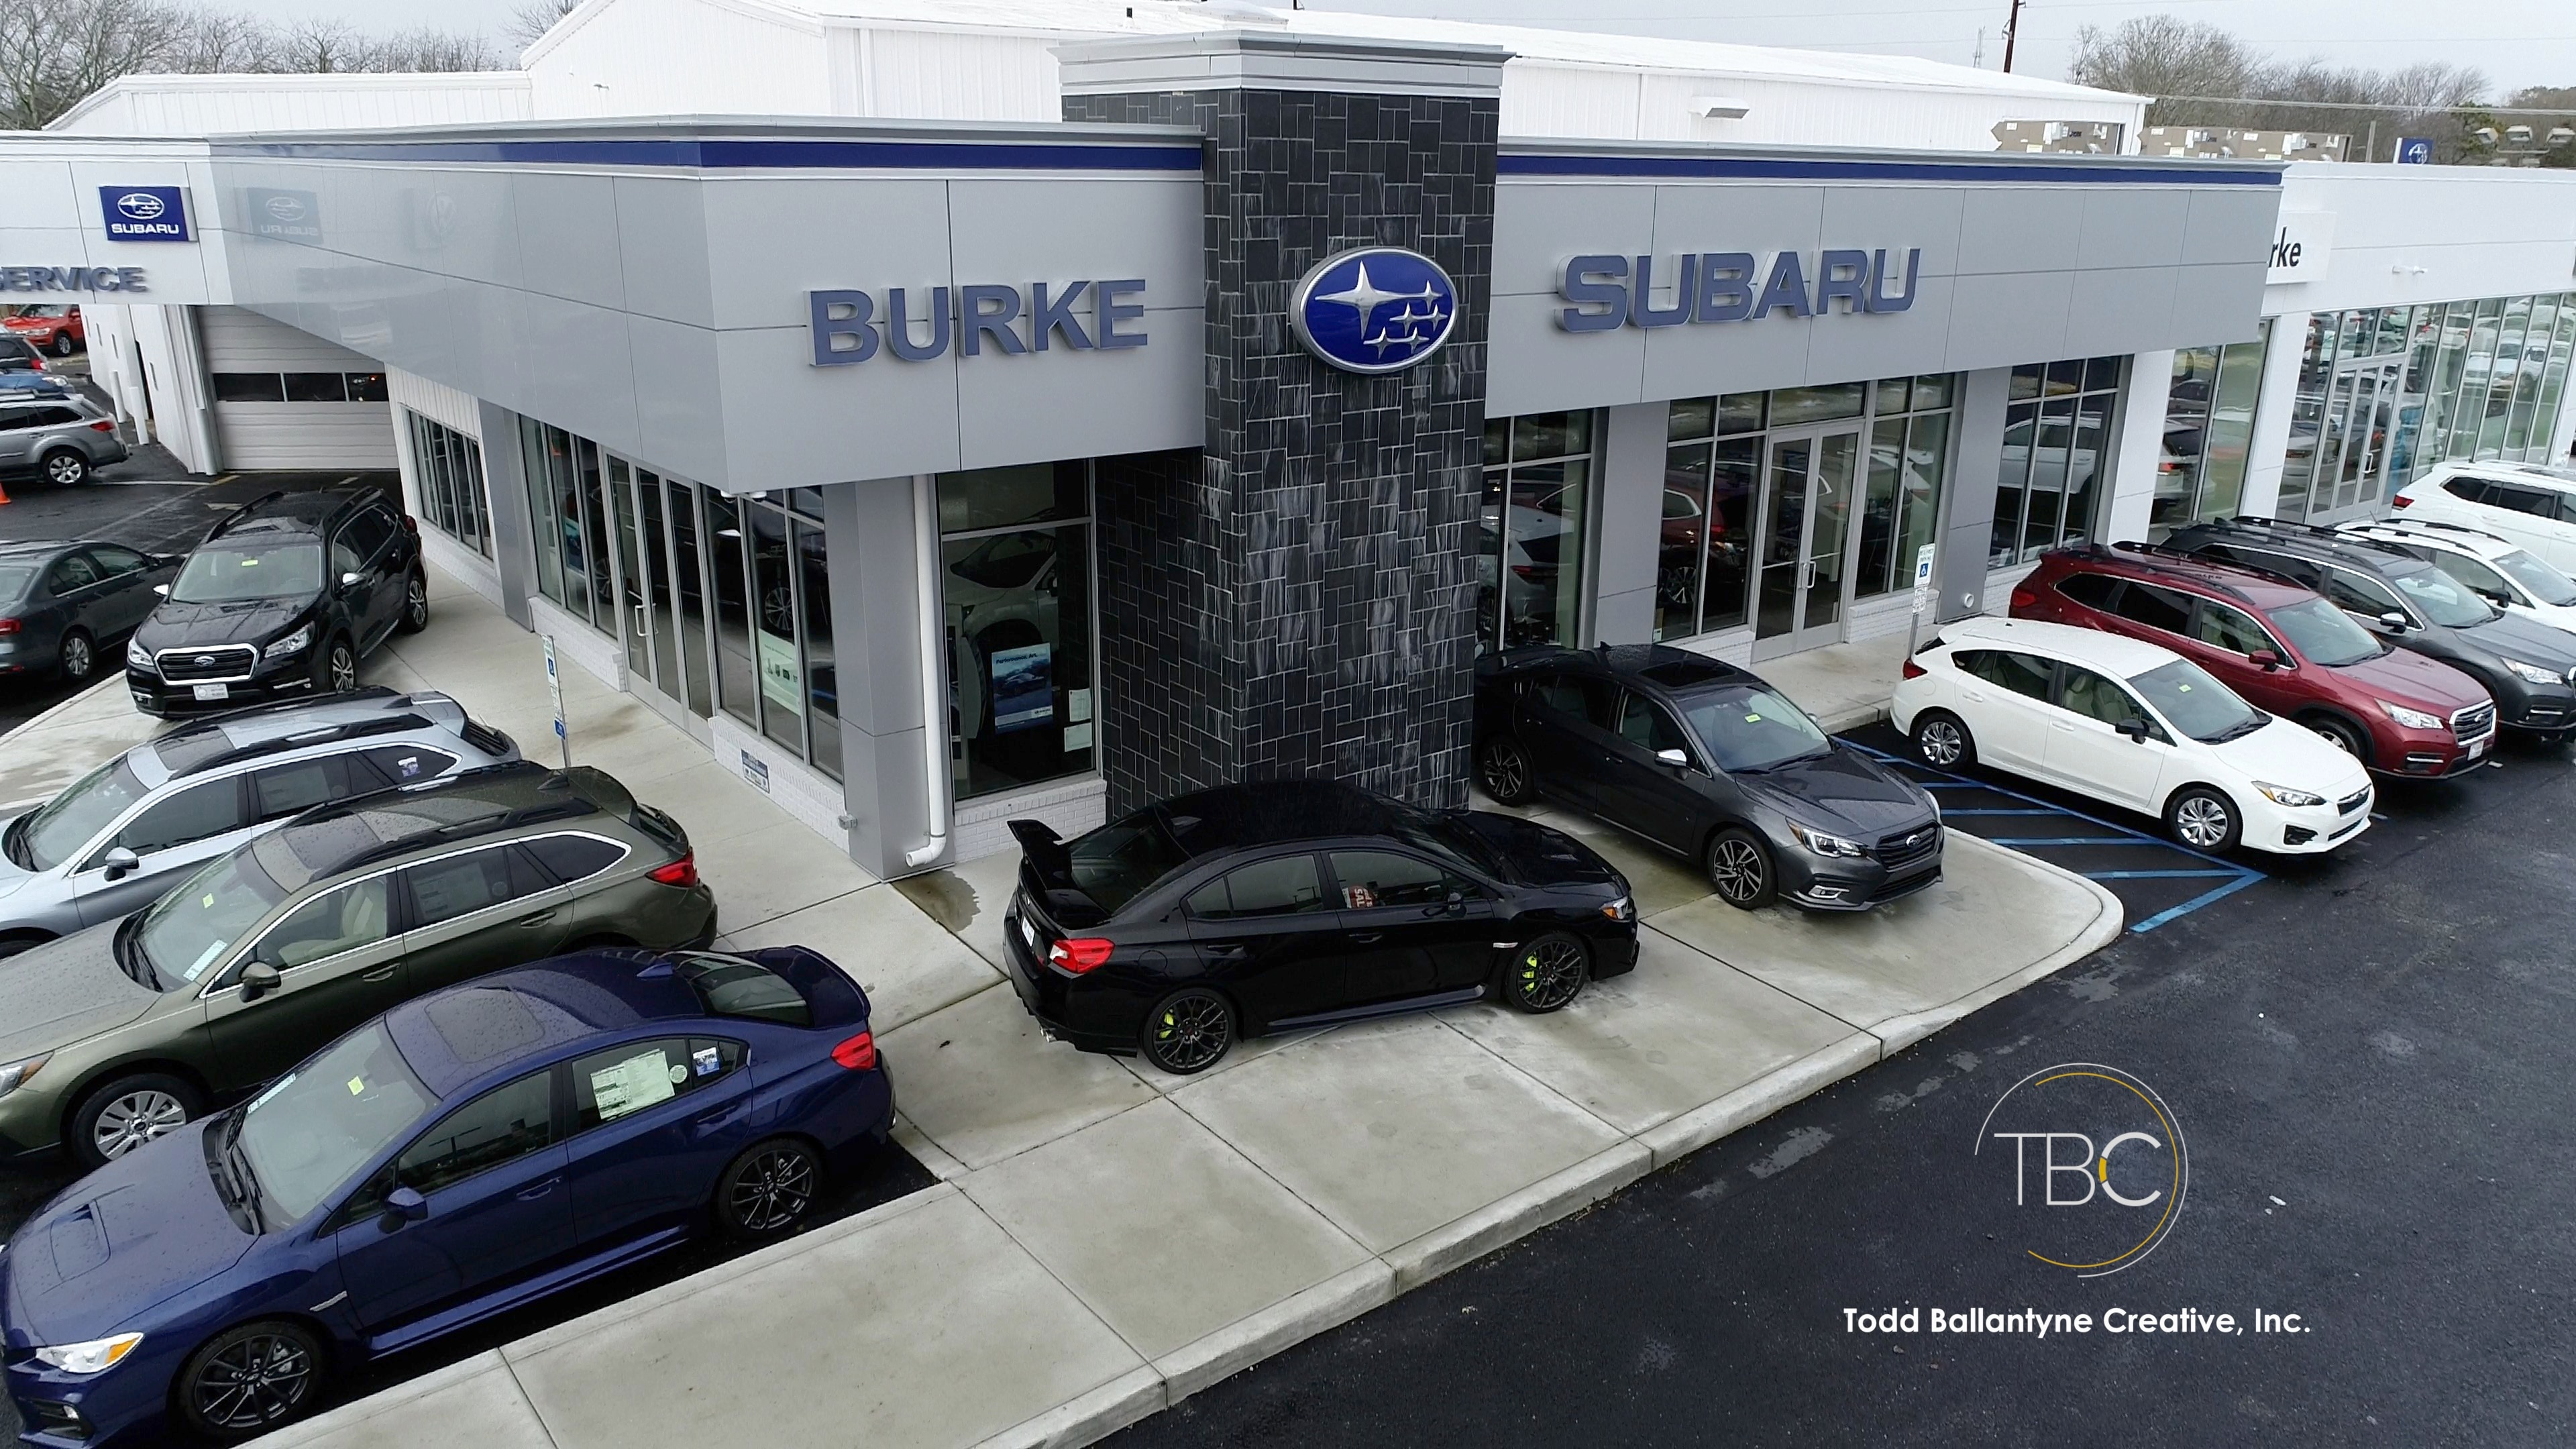 Subaru Dealers Nj >> About Our Subaru Dealer In New Jersey New And Pre Owned Subaru